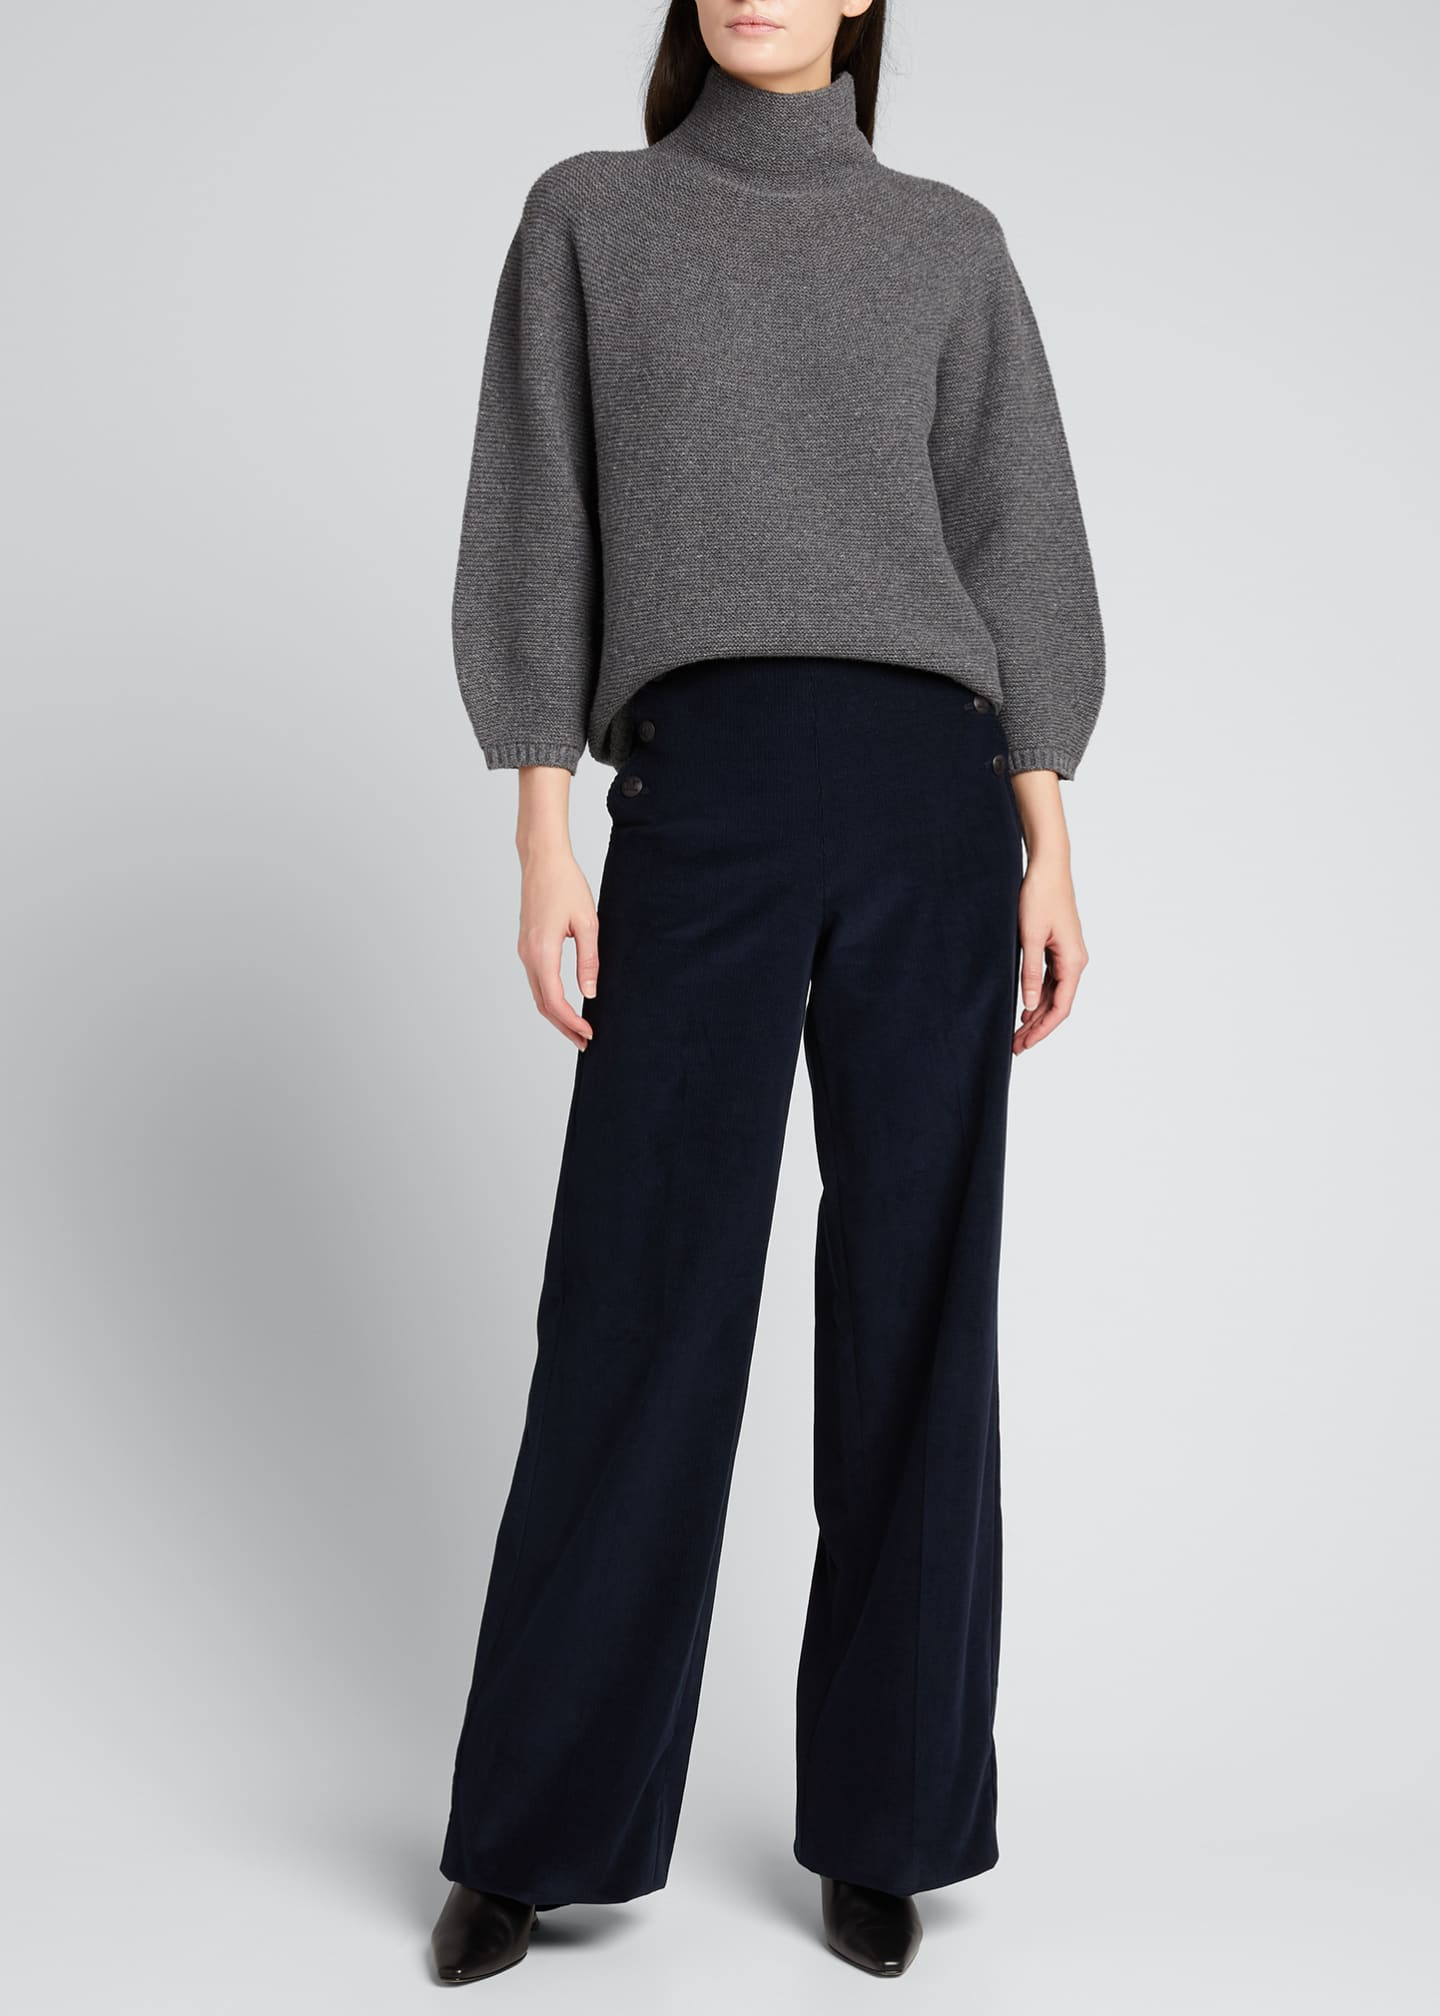 Image 1 of 5: Etrusco Wool-Cashmere High-Neck Sweater